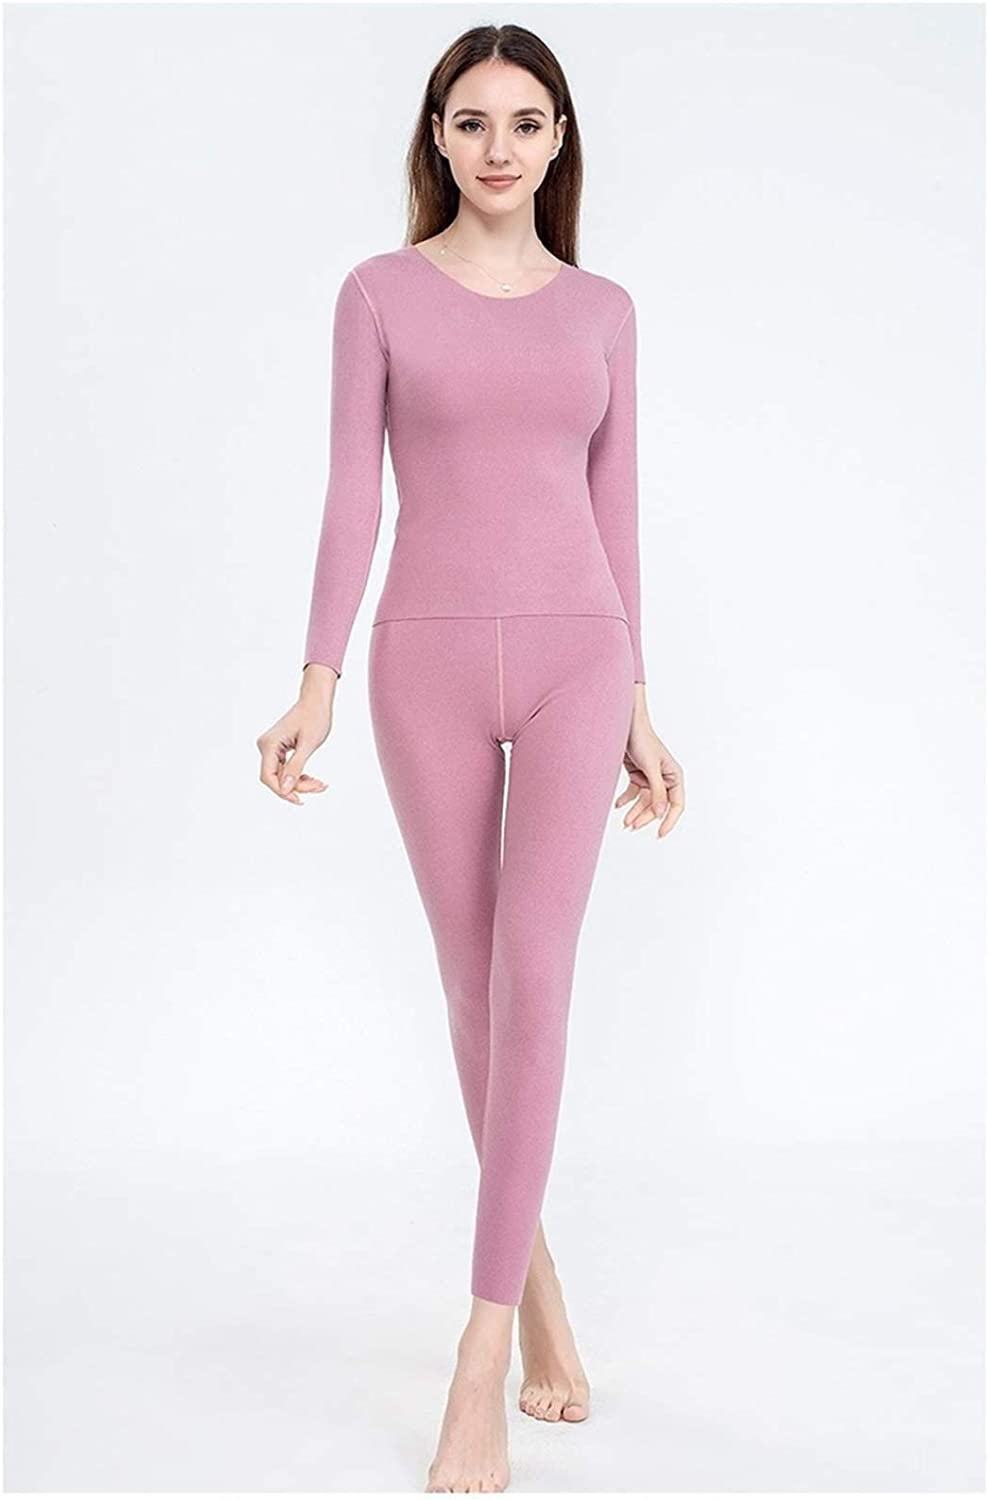 QWERBAM Thick Thermal Underwear Set Female Seamless Elastic Round Neck Warm Women Autumn Winter Clothing (Color : Pink Purple, Size : XL.)